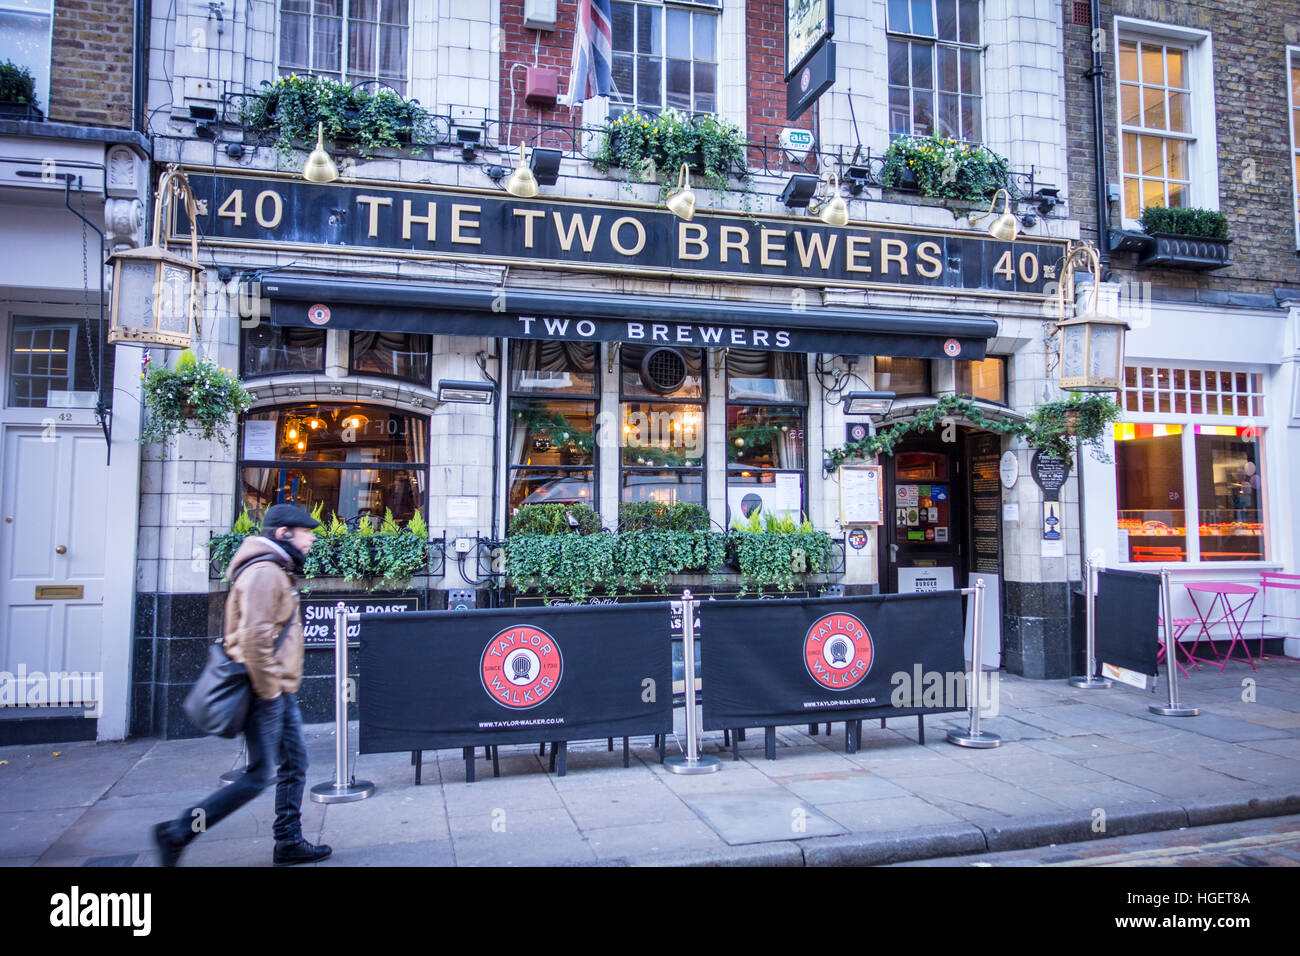 The Two Brewers, traditional pub on Monmouth Street, Seven Dials / Covent Garden, London, UK - Stock Image